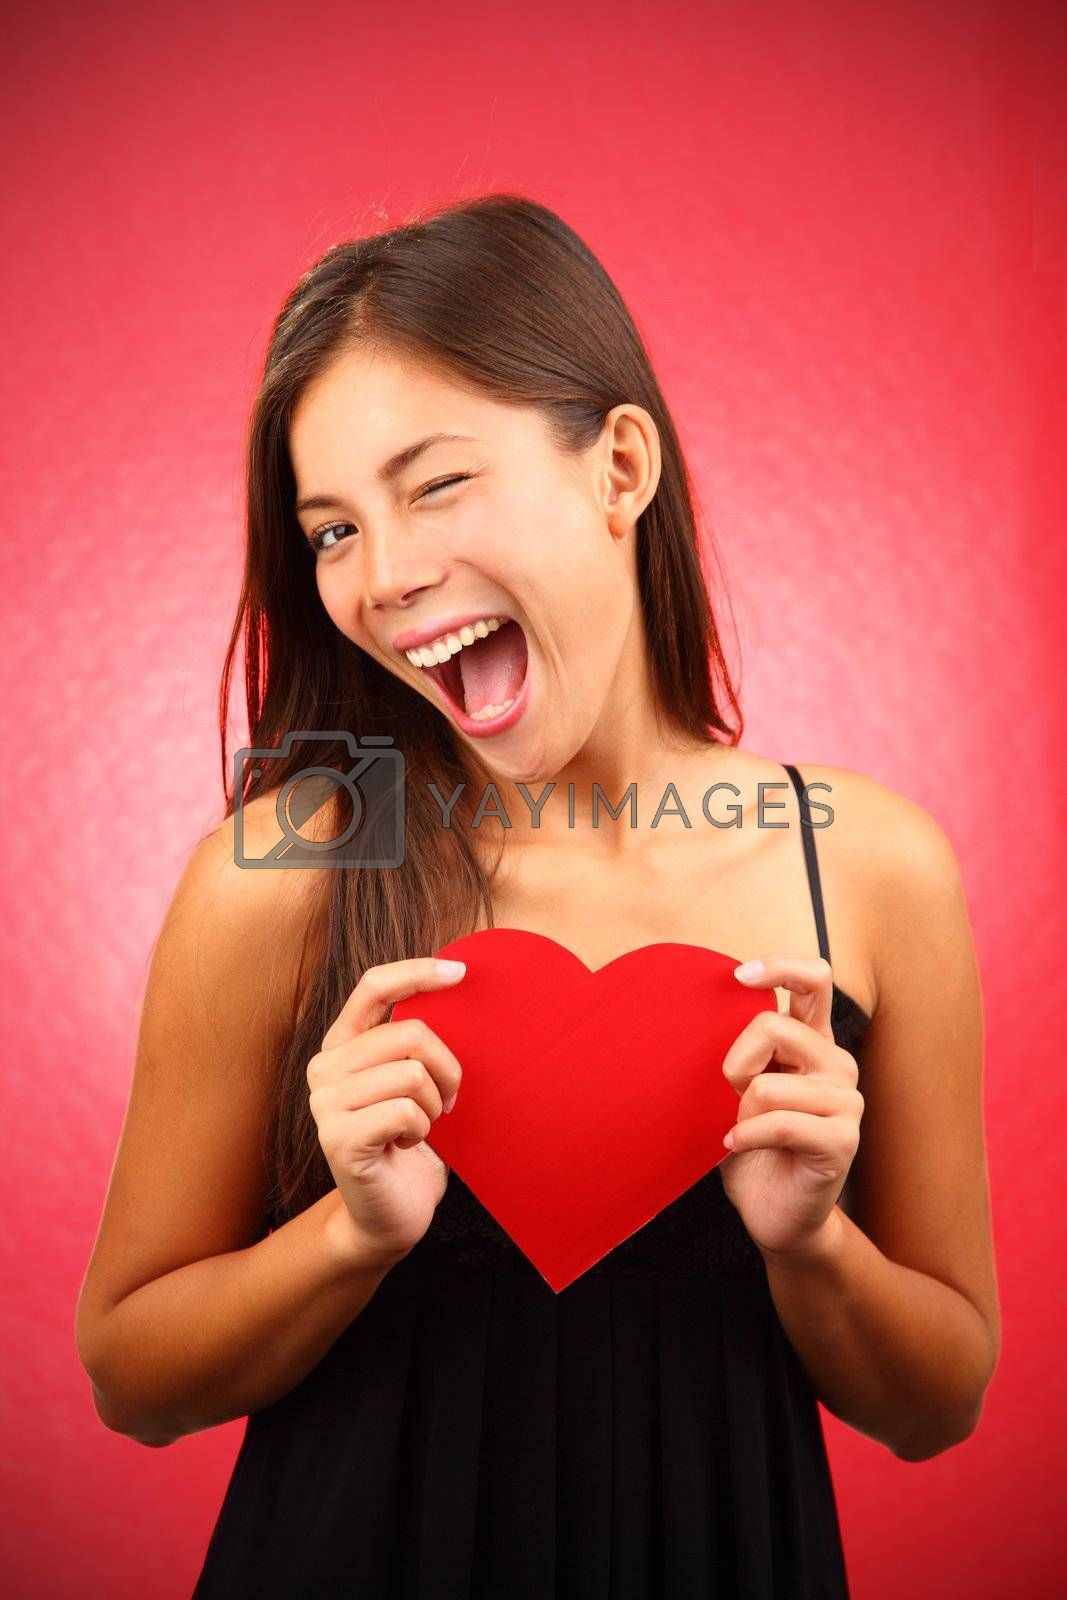 Woman holding Valentines Day heart sign. Beautiful mixed race chinese / caucasian model.